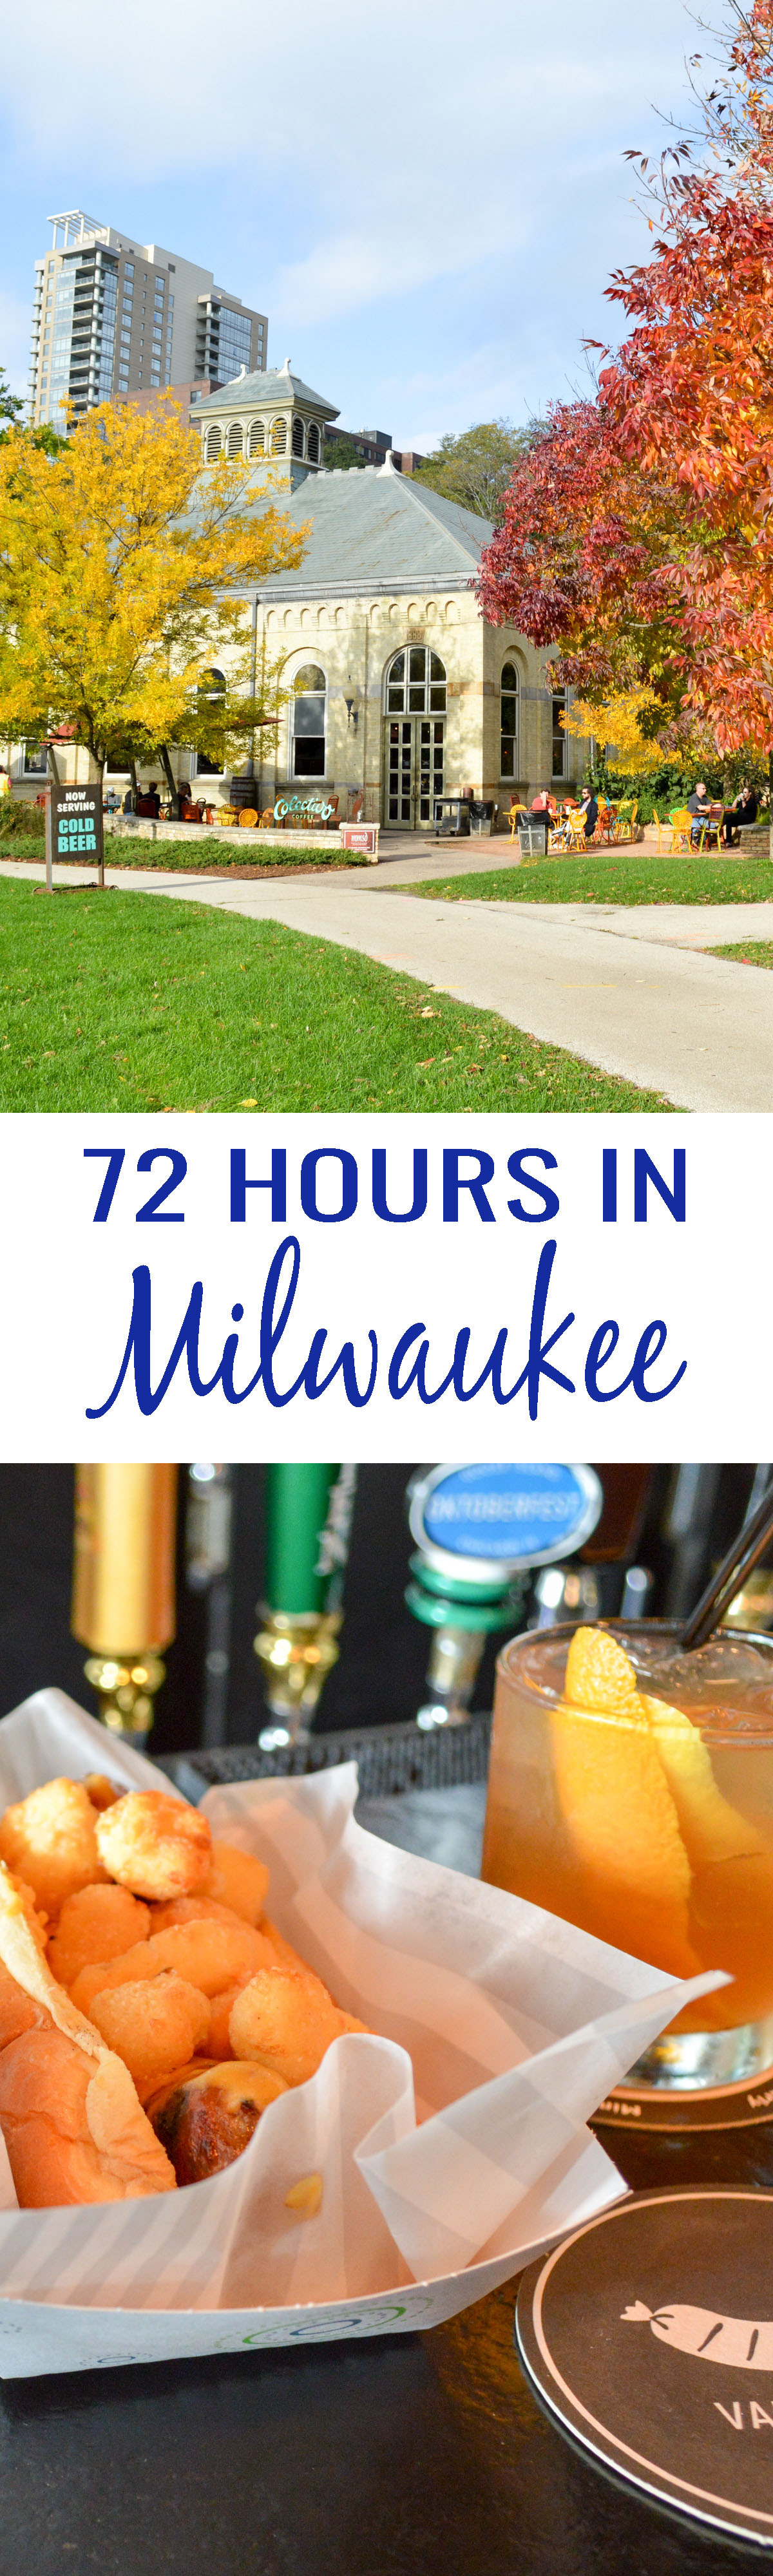 72 Hours in Milwaukee: A list of the best things to see, do, and taste. Milwaukee represents as the original Beer City, USA!